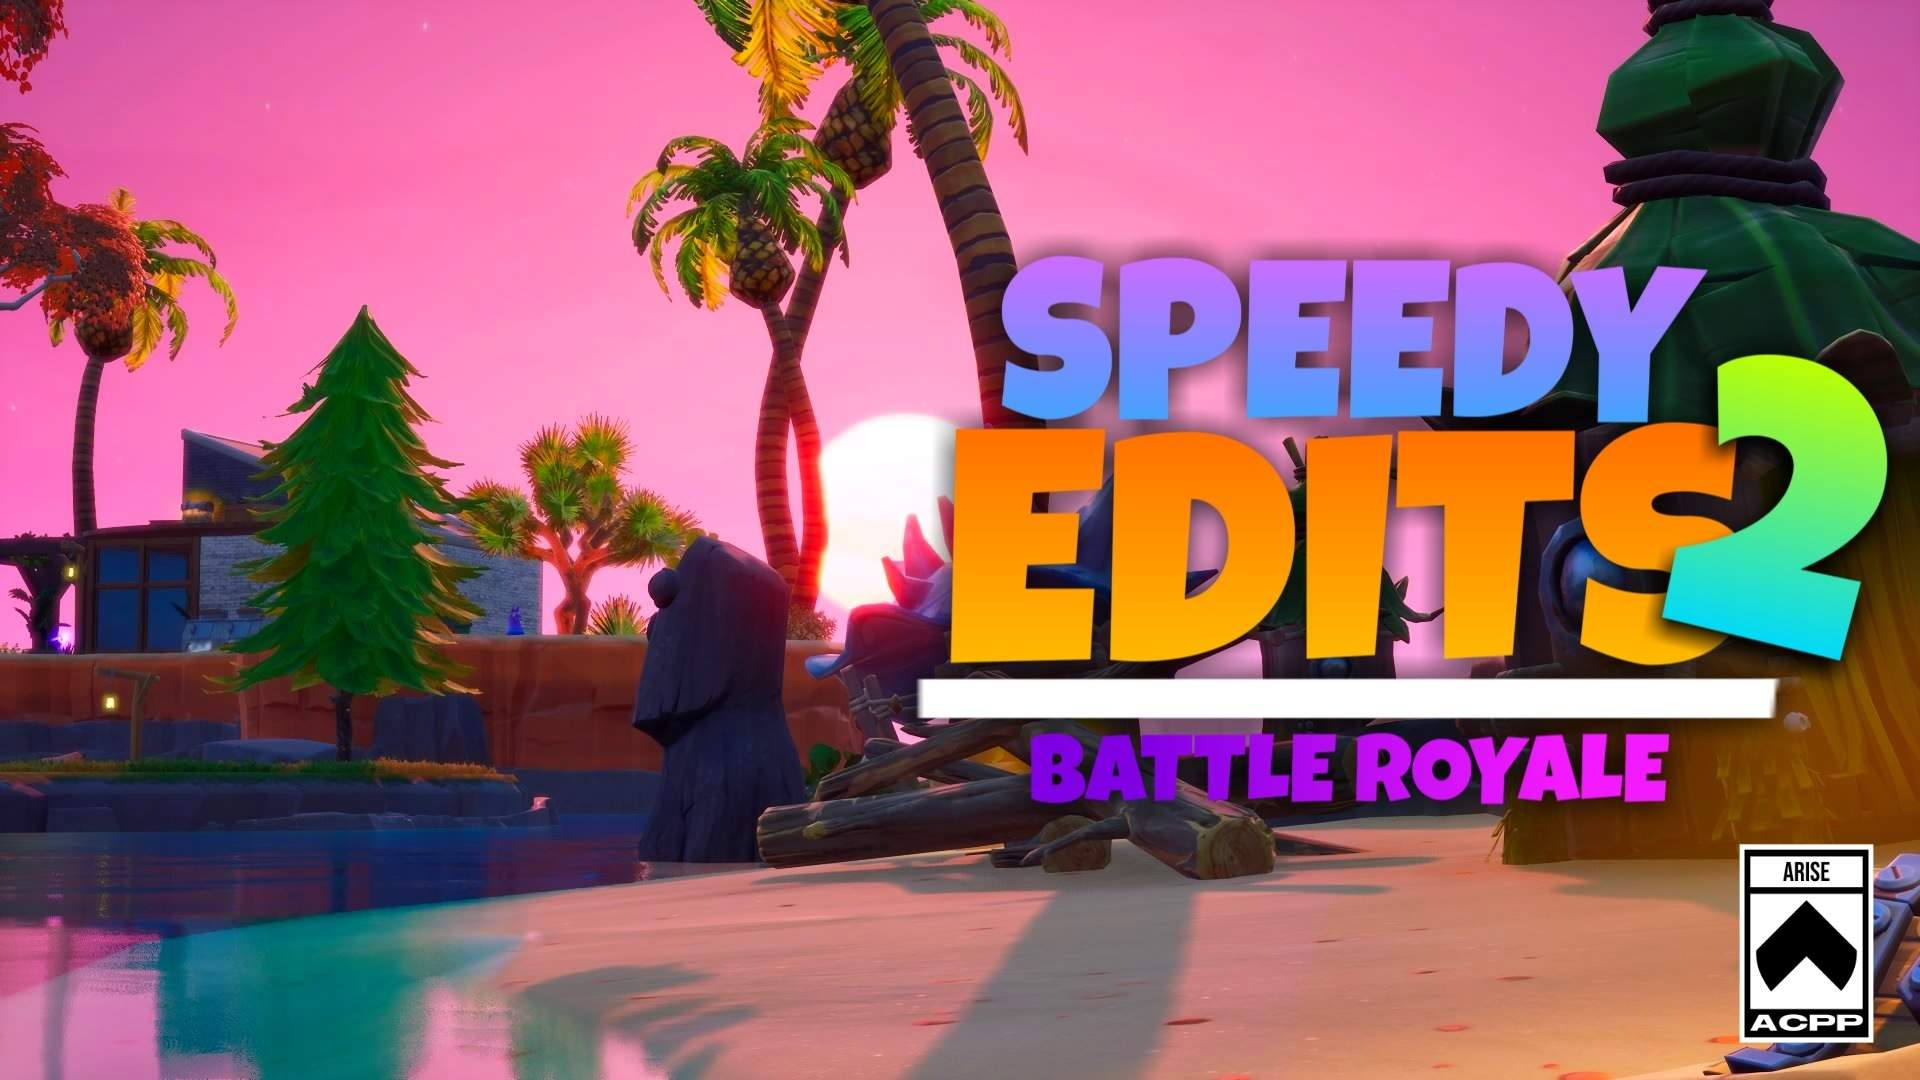 SPEEDY EDITS 2 - BATTLE ROYALE | S1